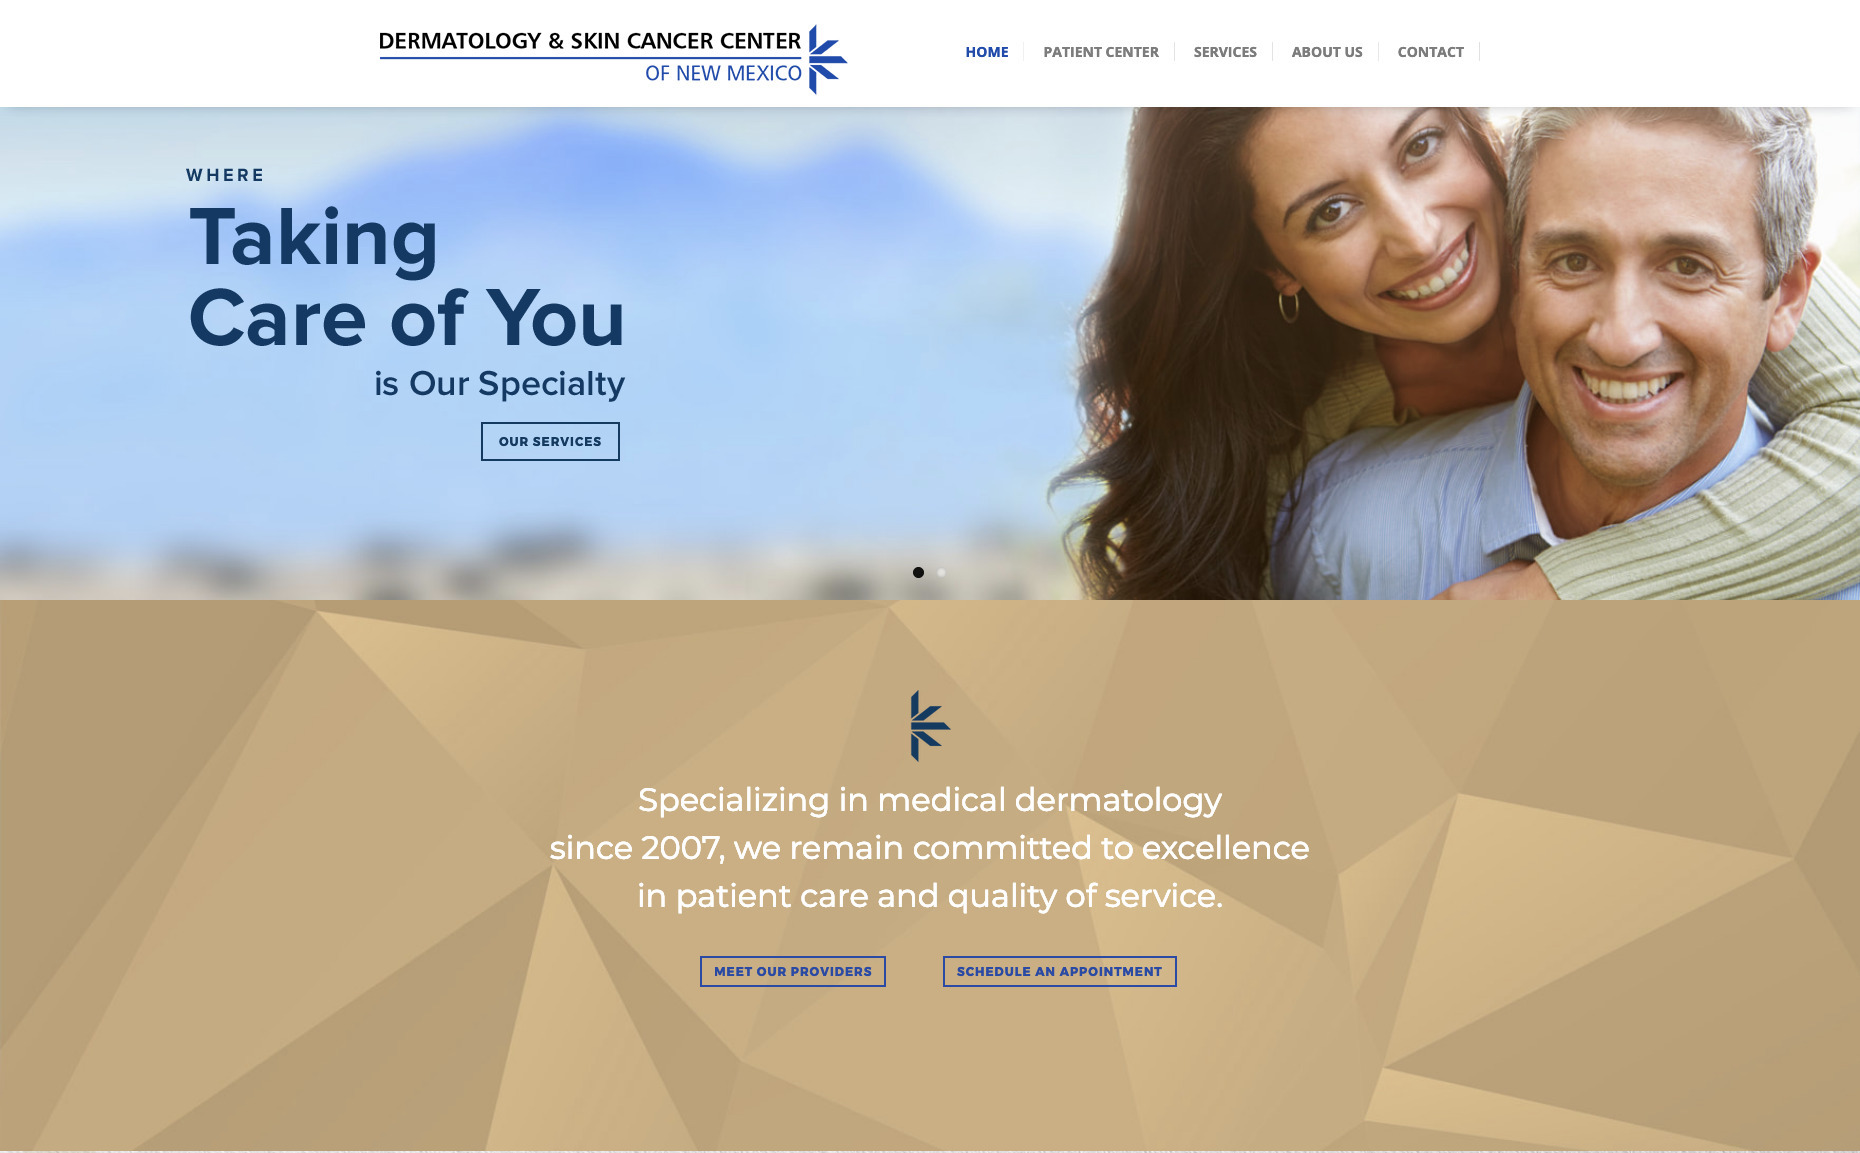 Dermatology & Skin Cancer Center of New Mexico